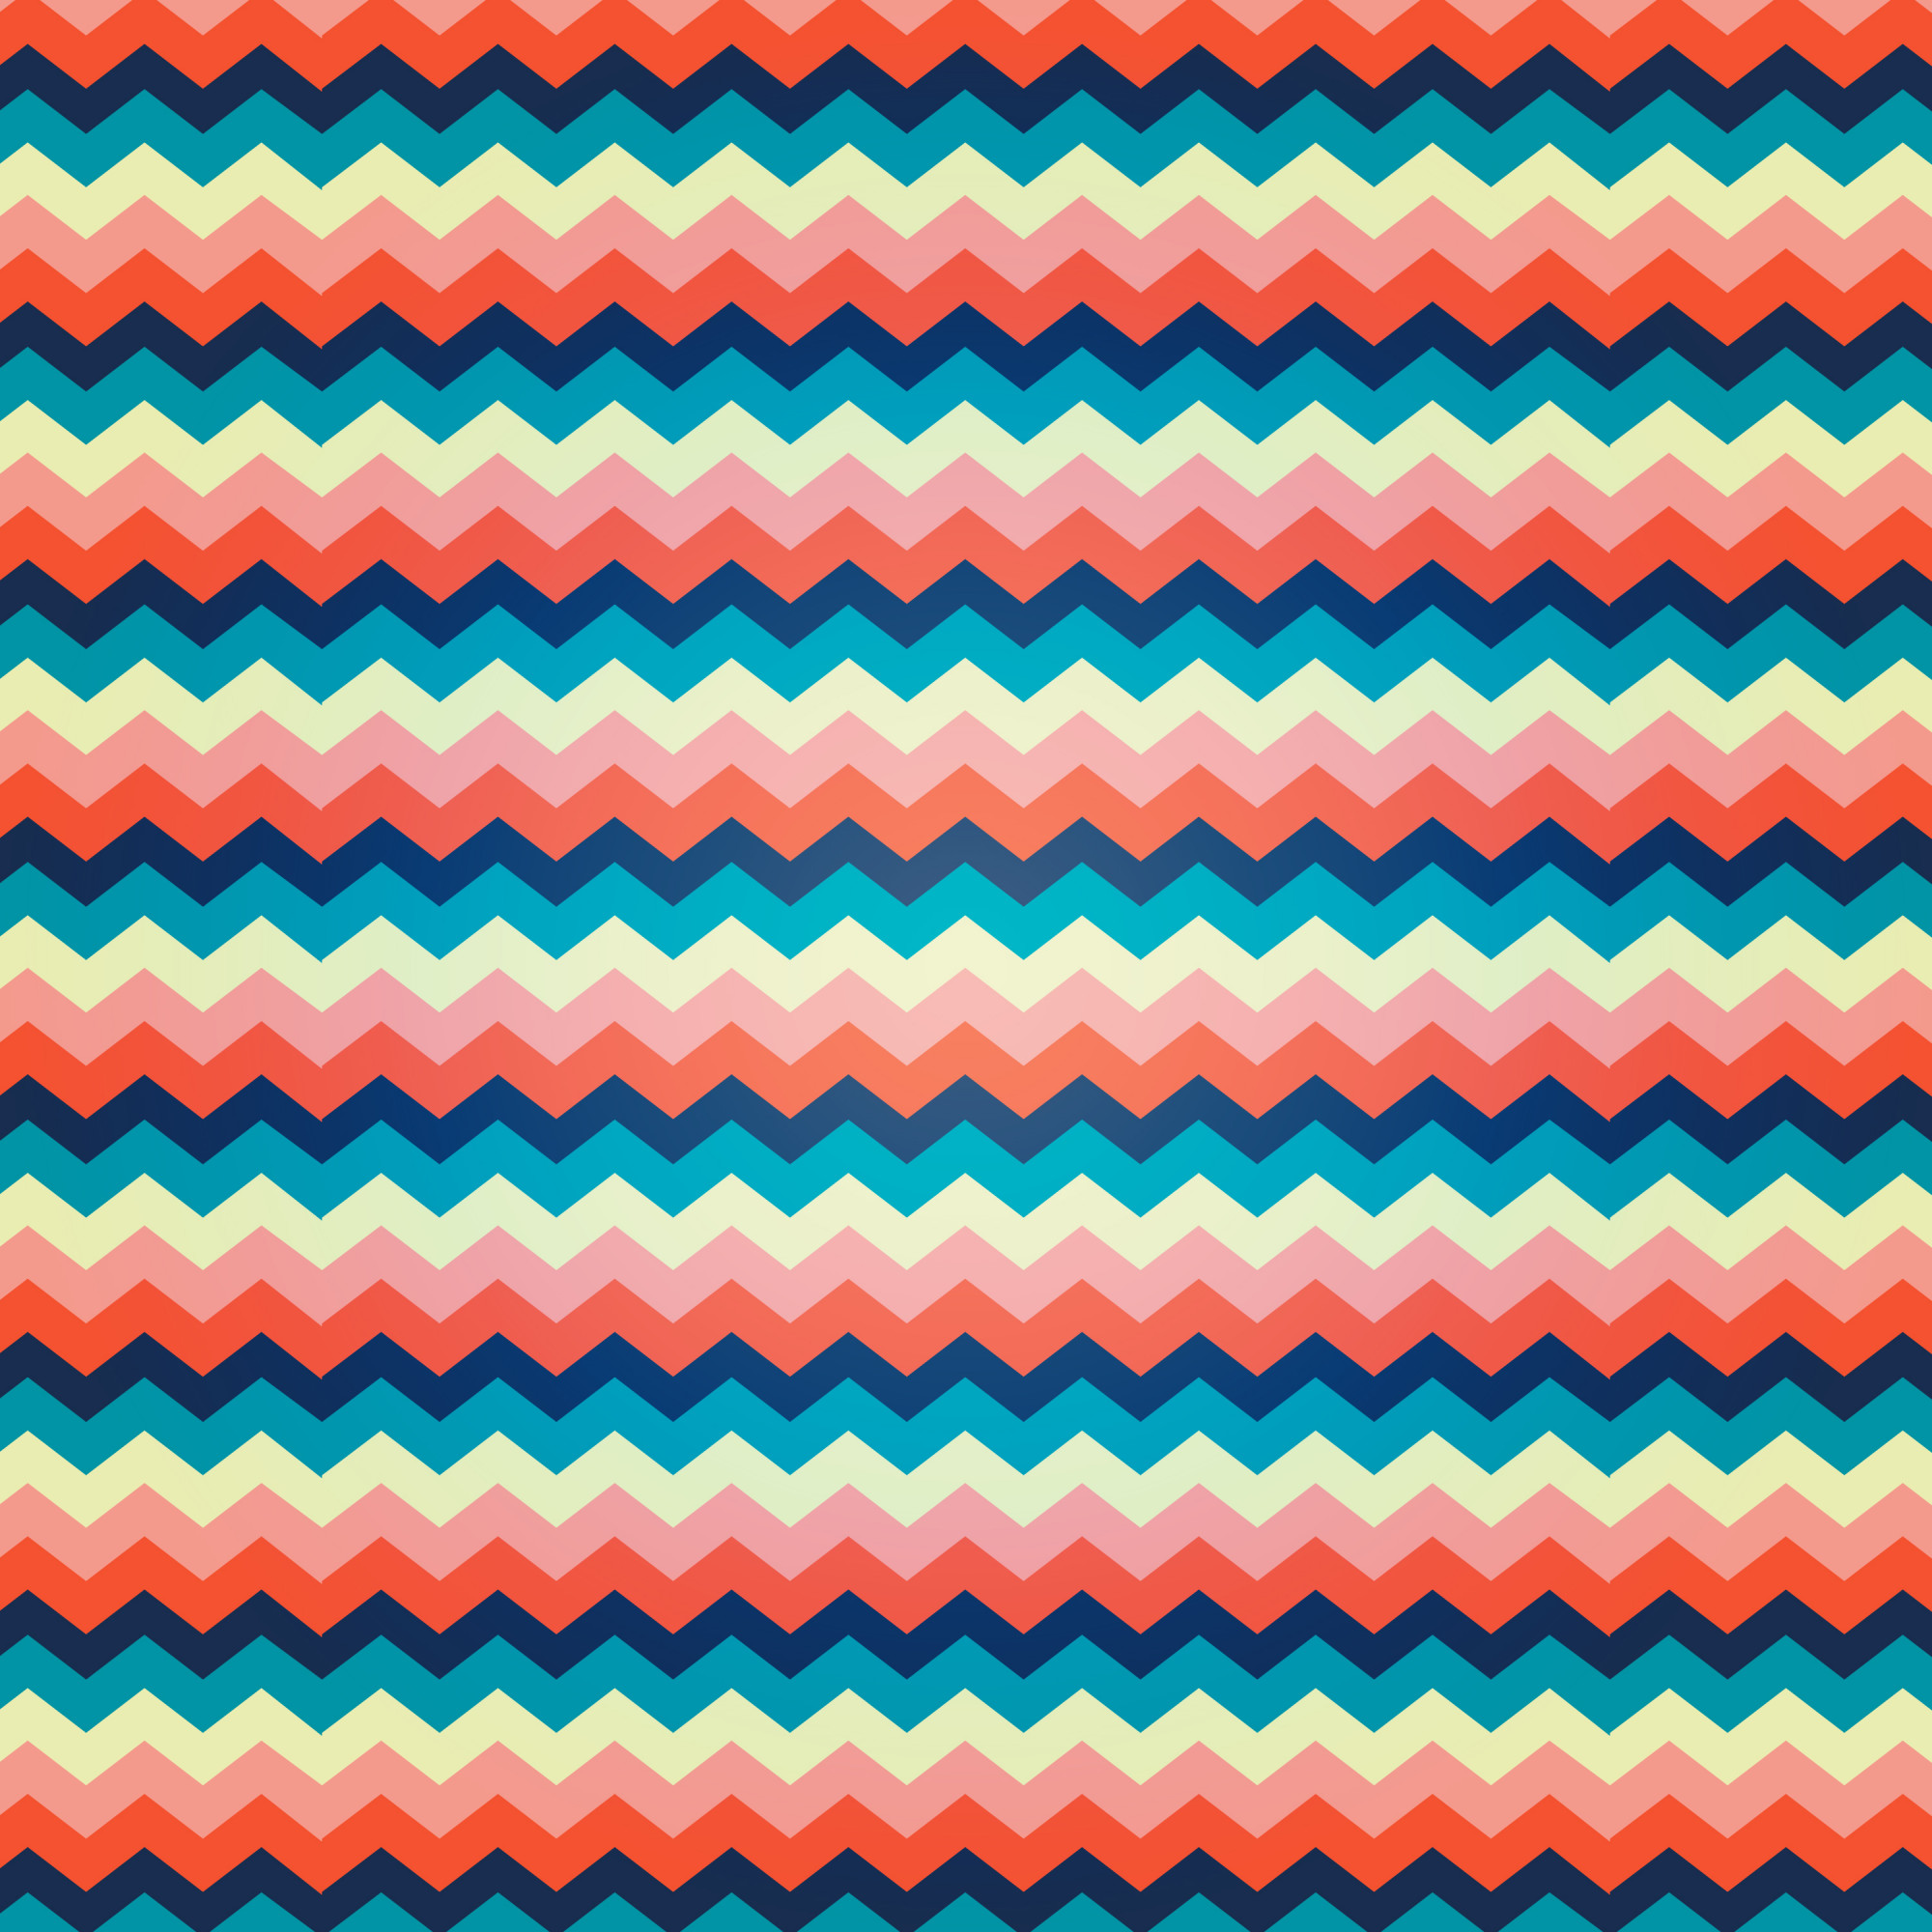 Zig zag pattern with vibrant colors